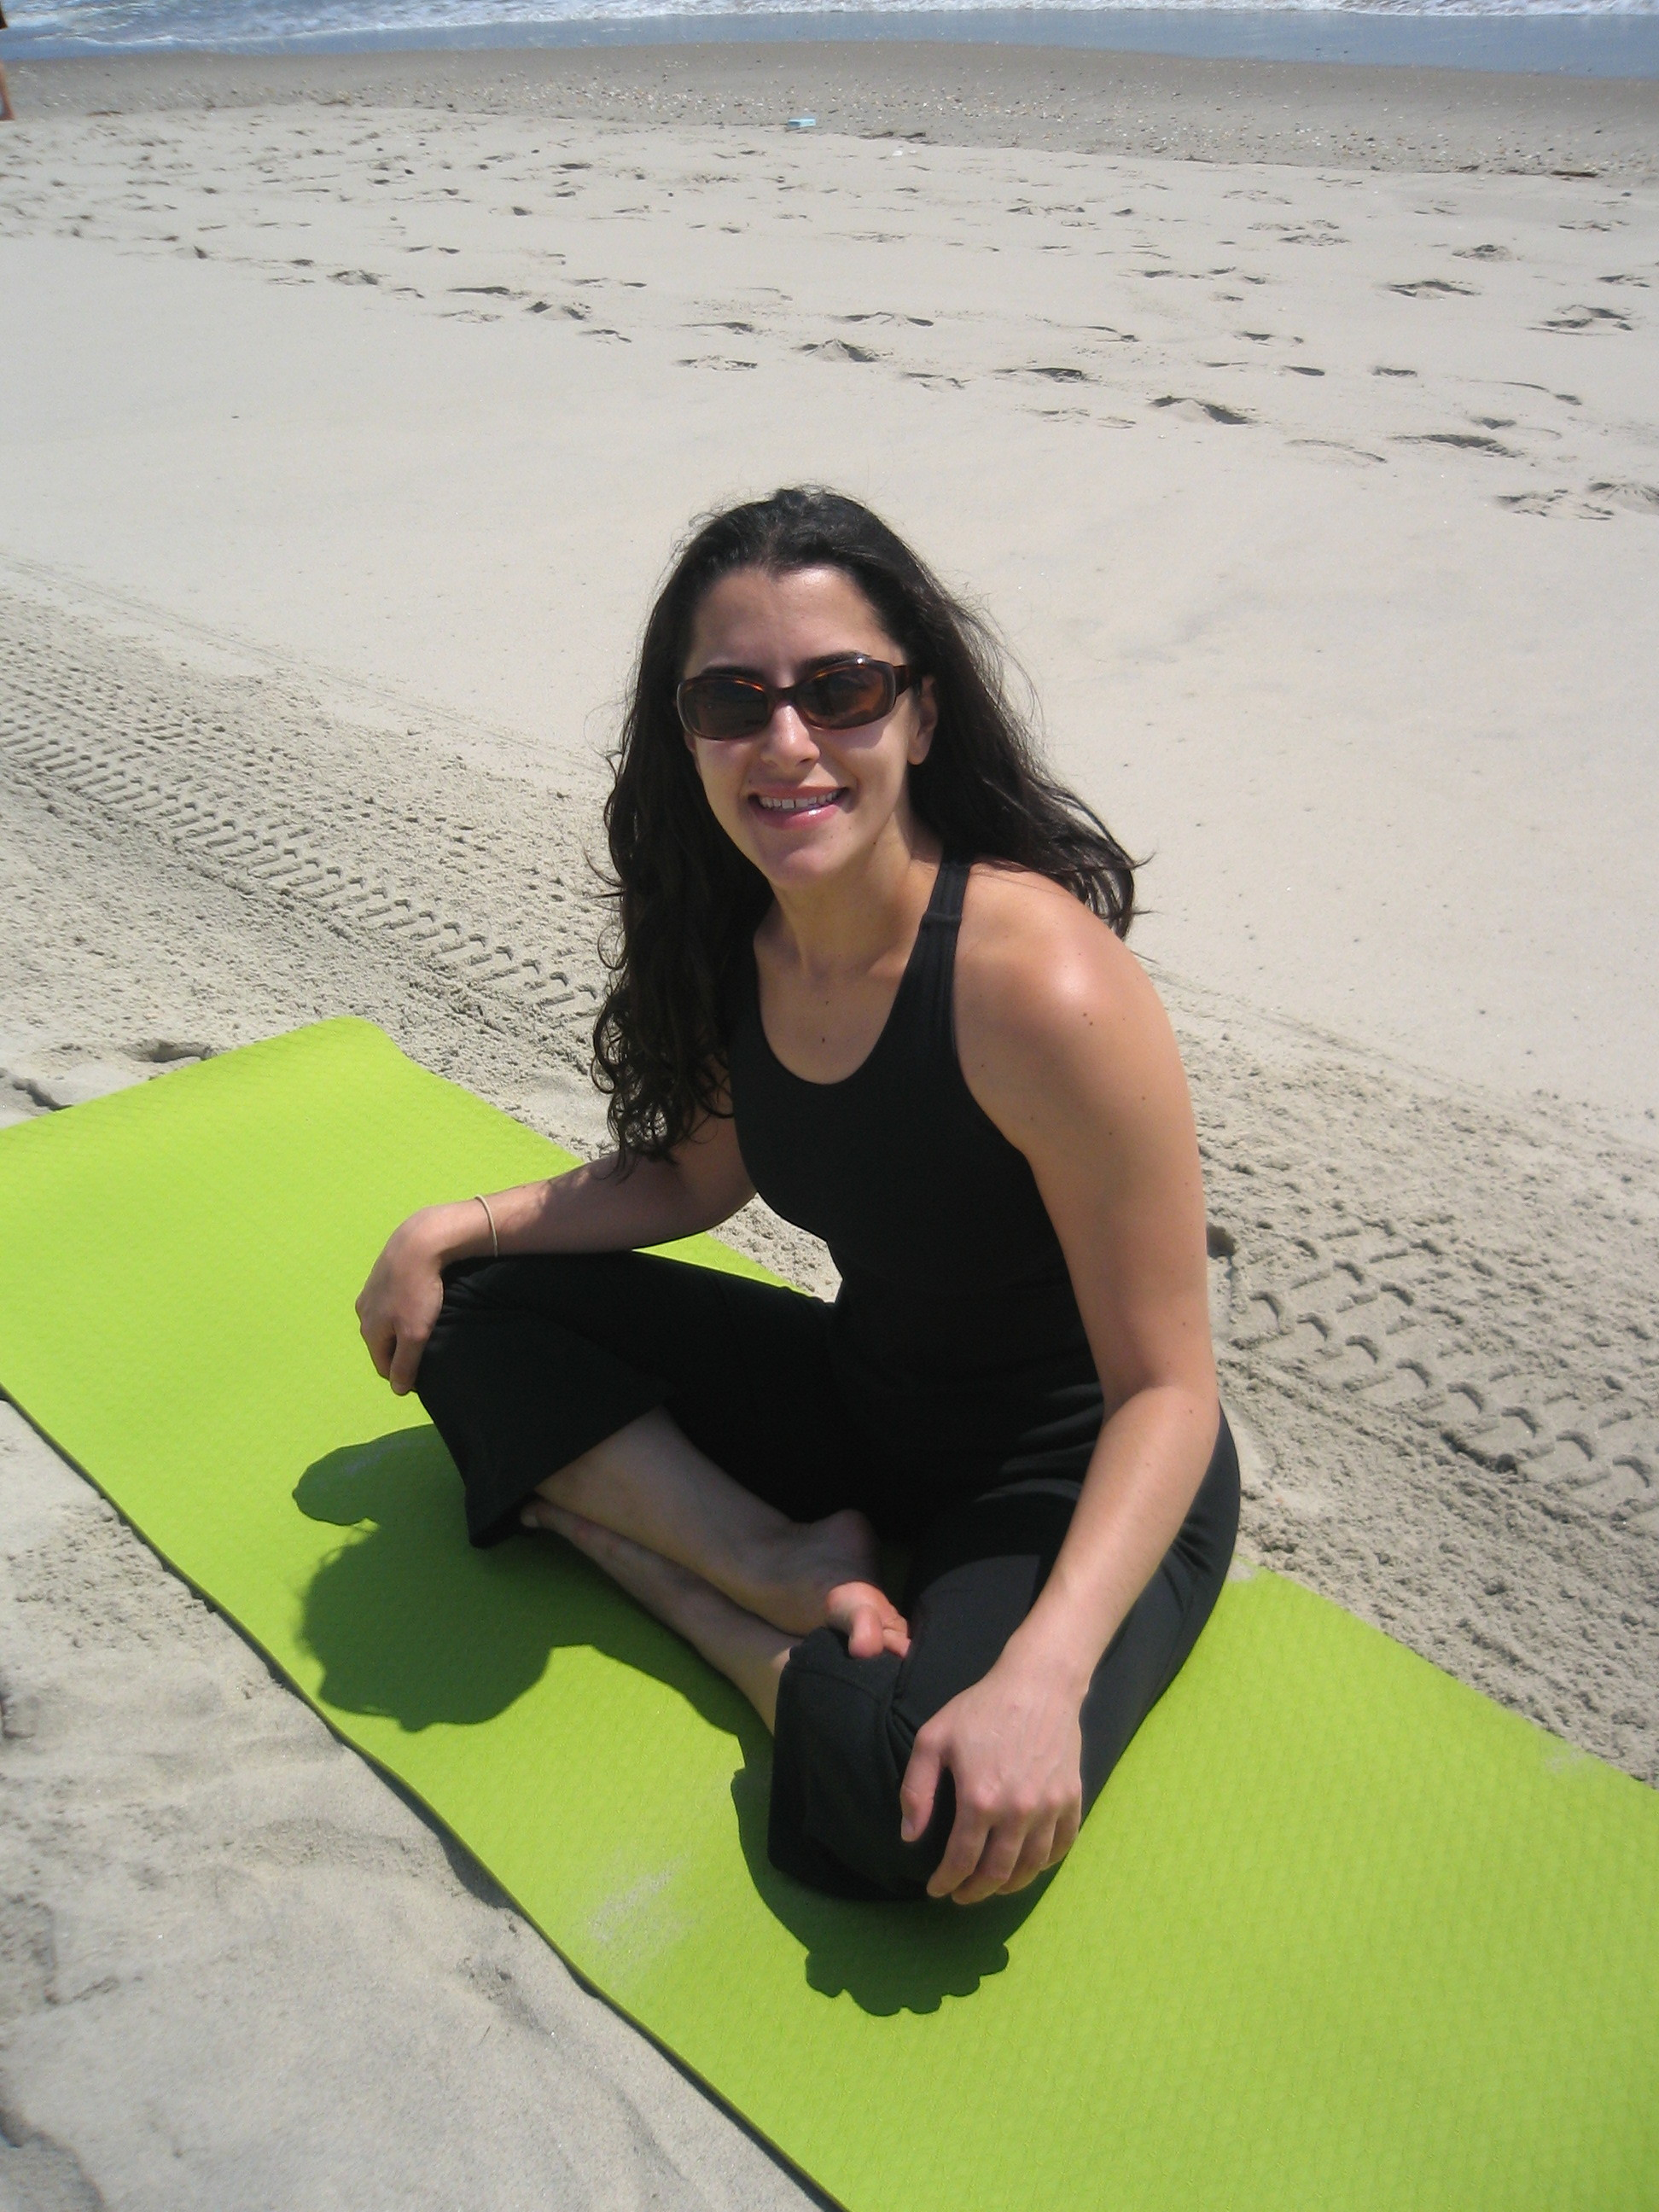 Julia Seated on Mat NJ Beach